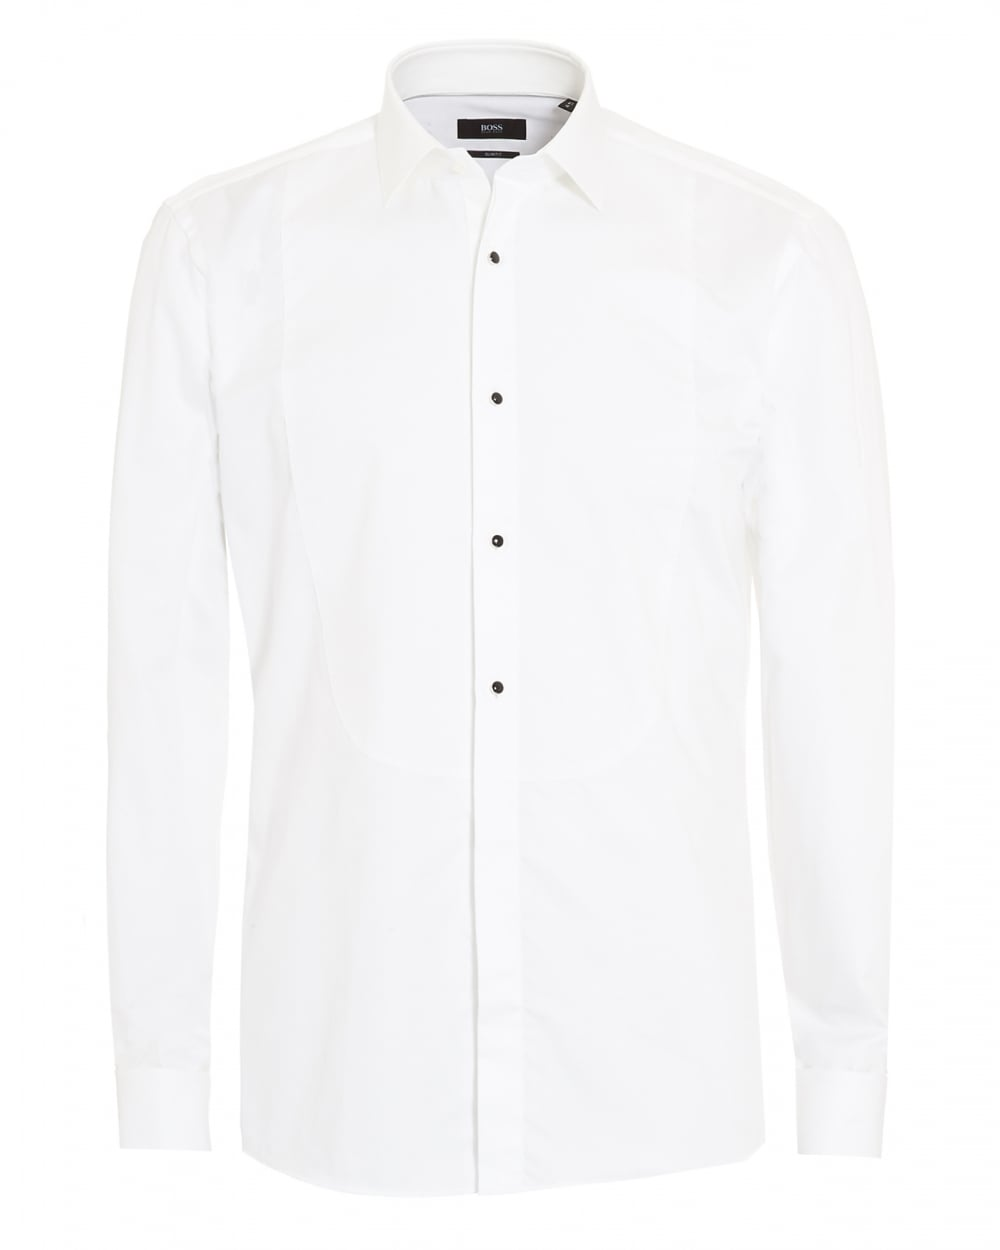 Hugo Boss Classic Mens Jant Plain White Slim Fit Dress Shirt